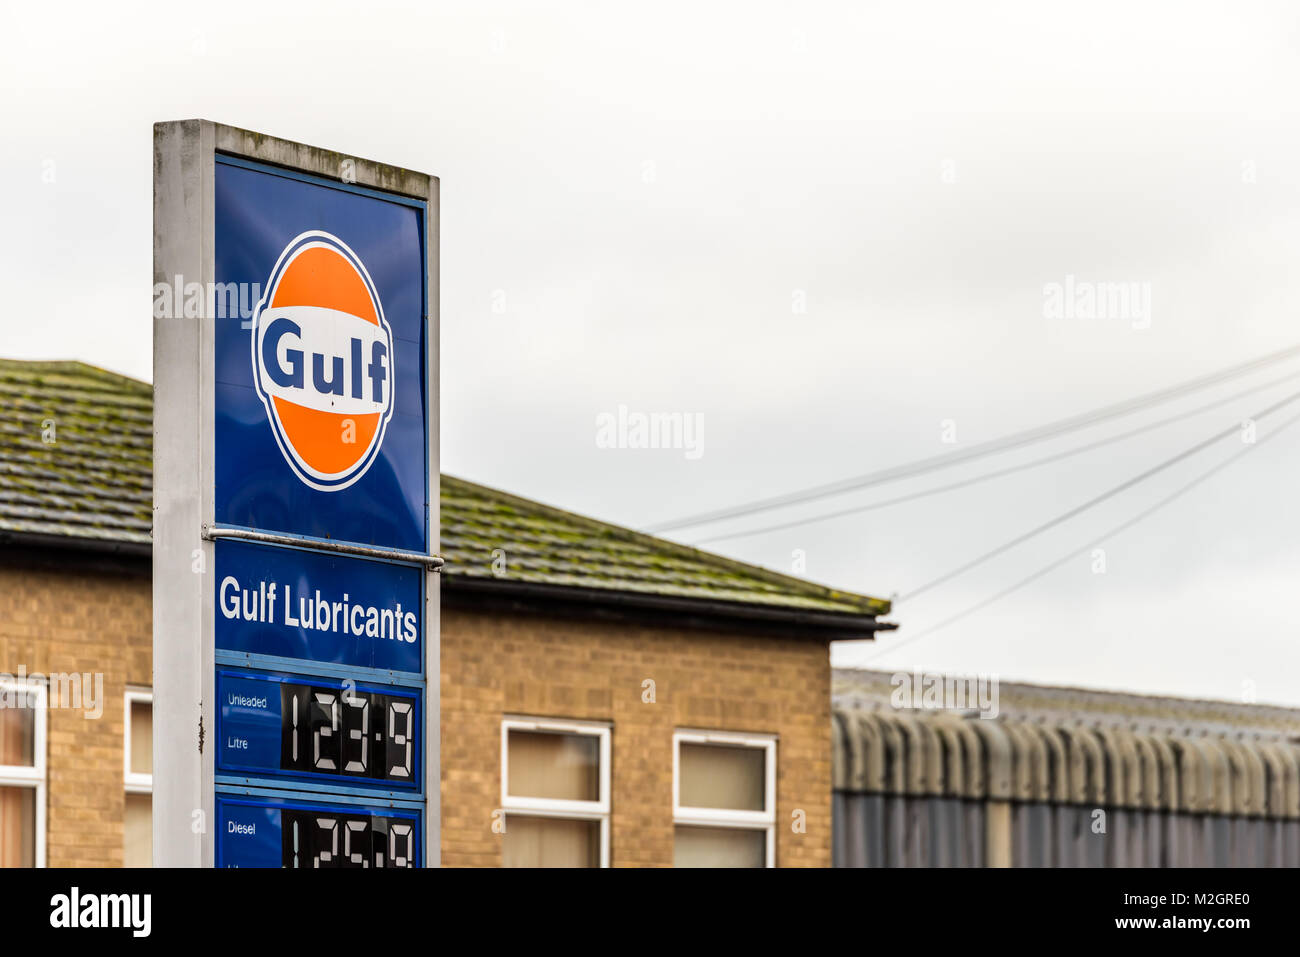 Northampton UK January 05, 2018: Gulf logo sign stand on